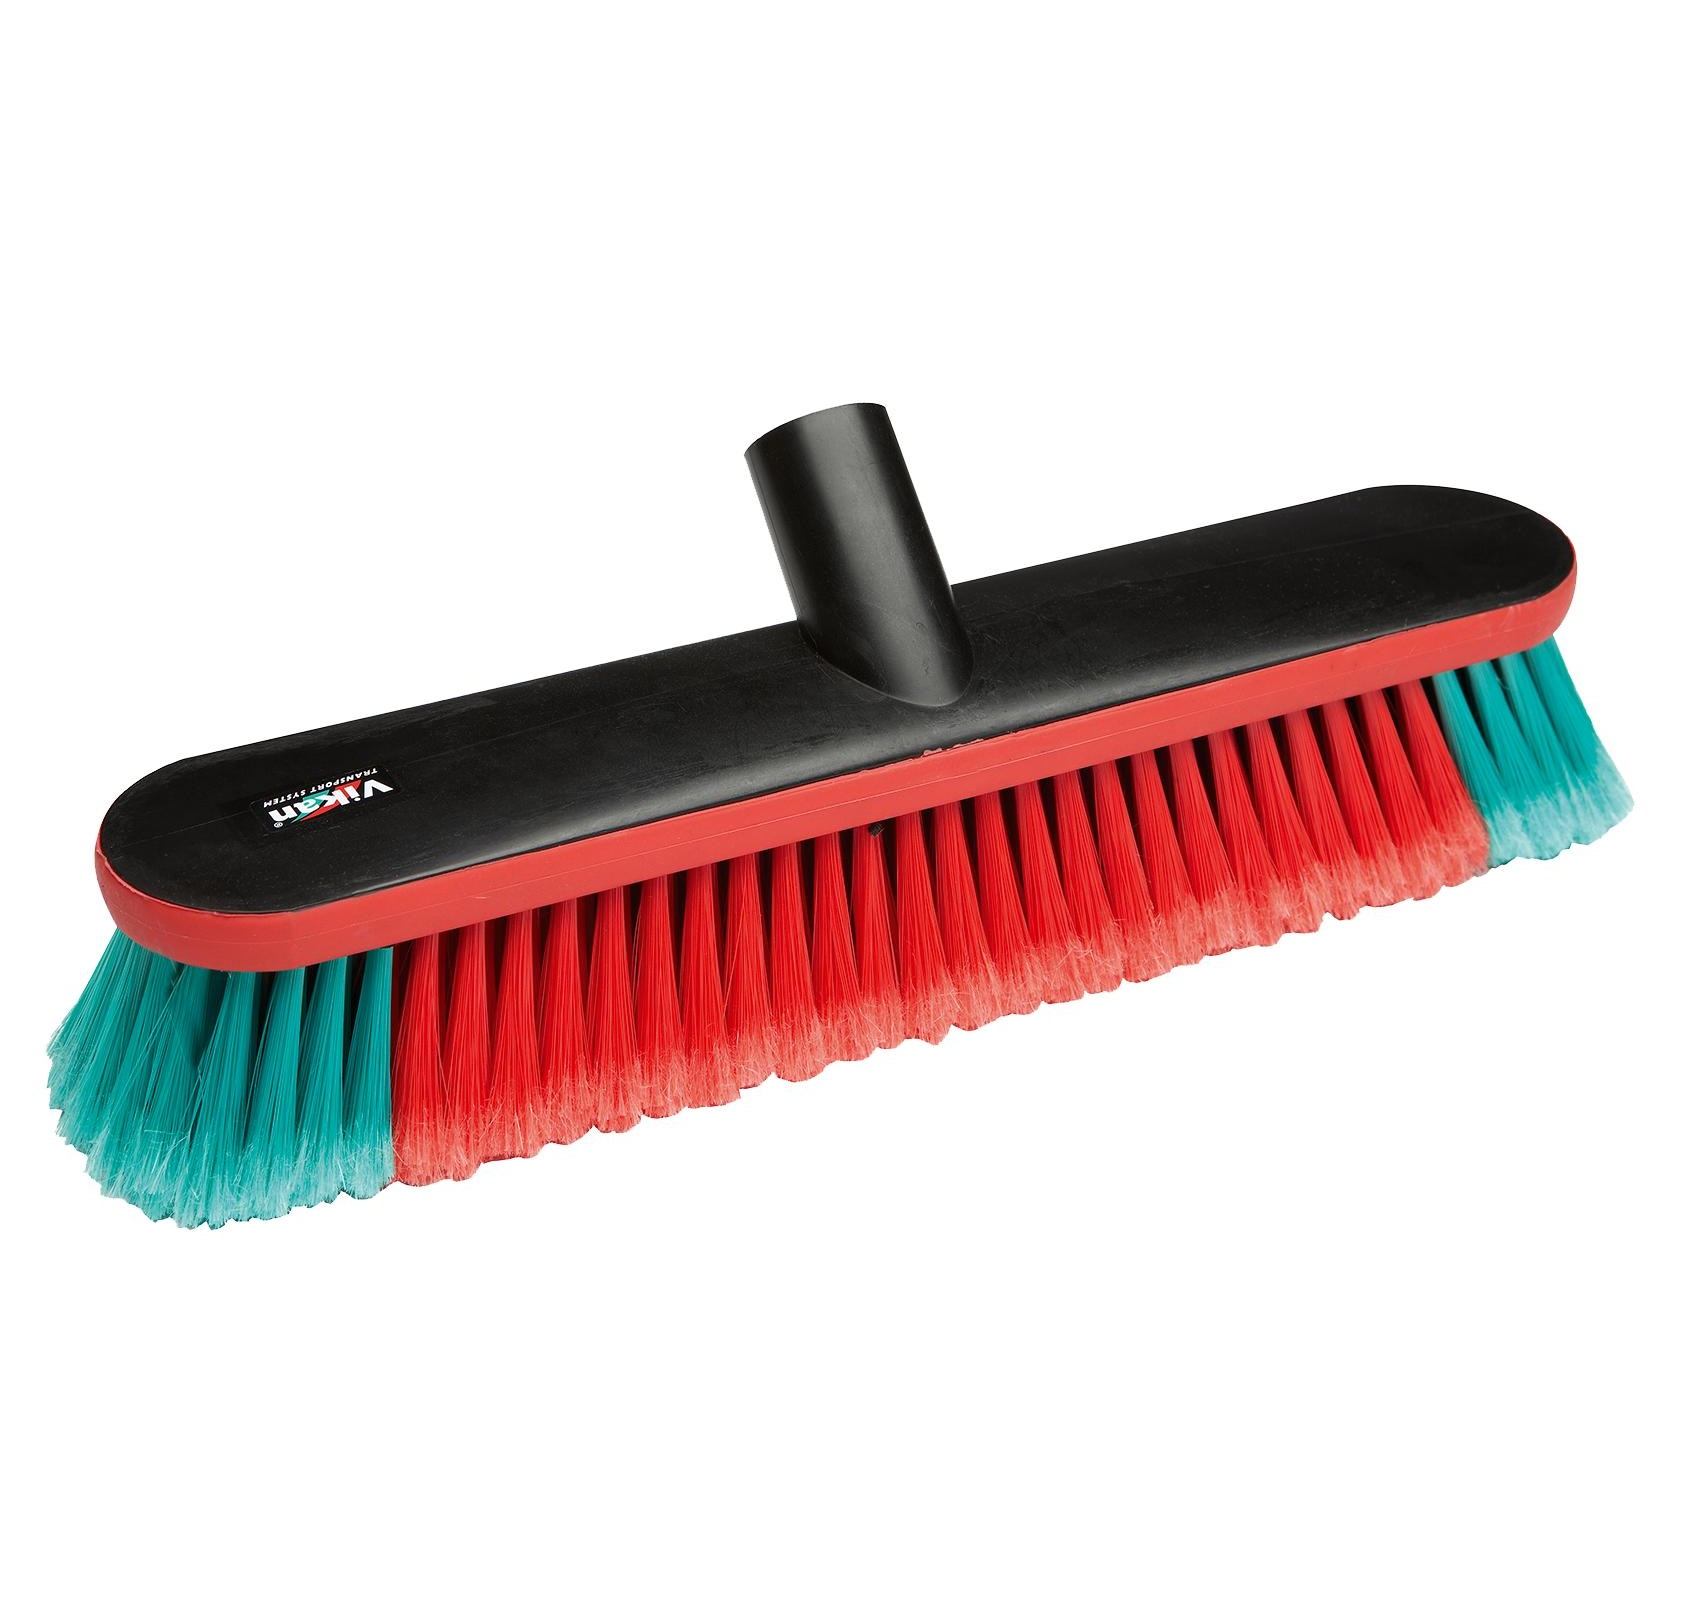 14-inch-Vikan-Flagged-Brush-without-jets